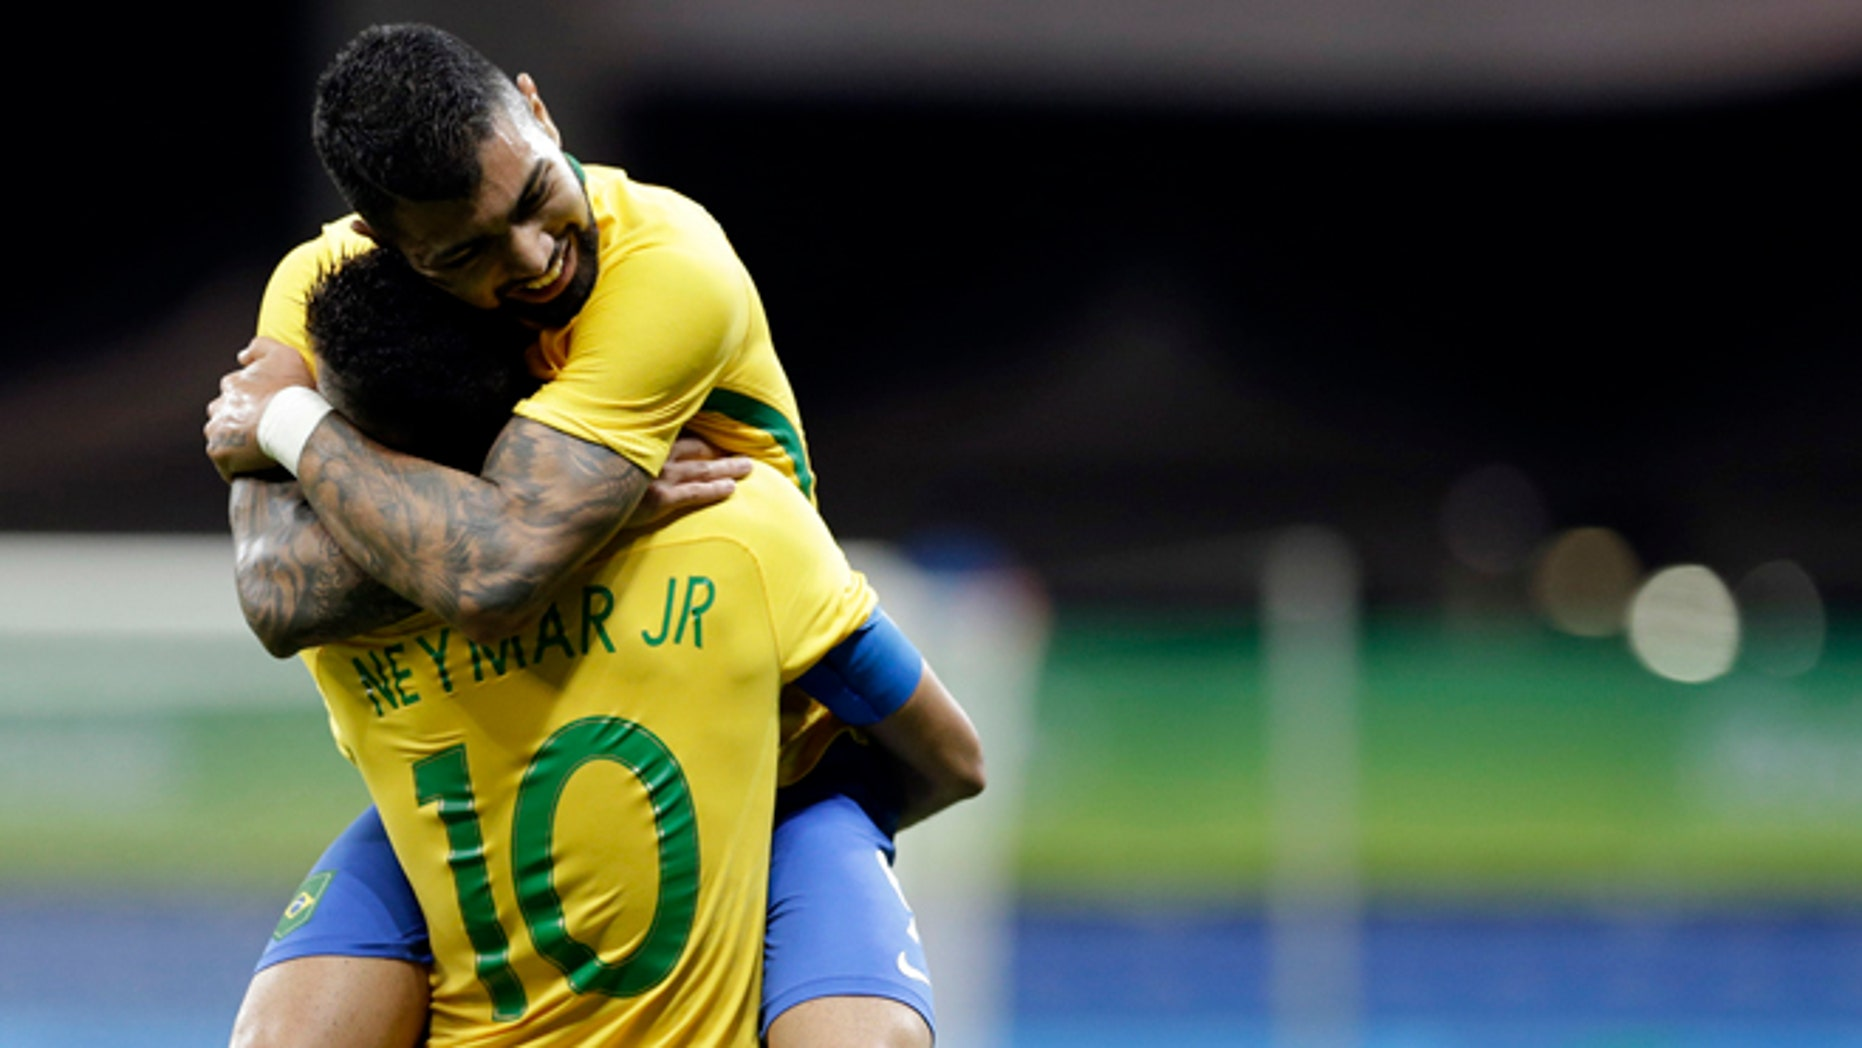 Brazil's Gabriel Barbosa celebrates with teammate Neymar after scoring his team's first goal during a group A match of the men' s Olympic football tournament between Brazil and Denmark in Salvador, Brazil, Wednesday Aug. 10, 2016.(AP Photo/Leo Correa)